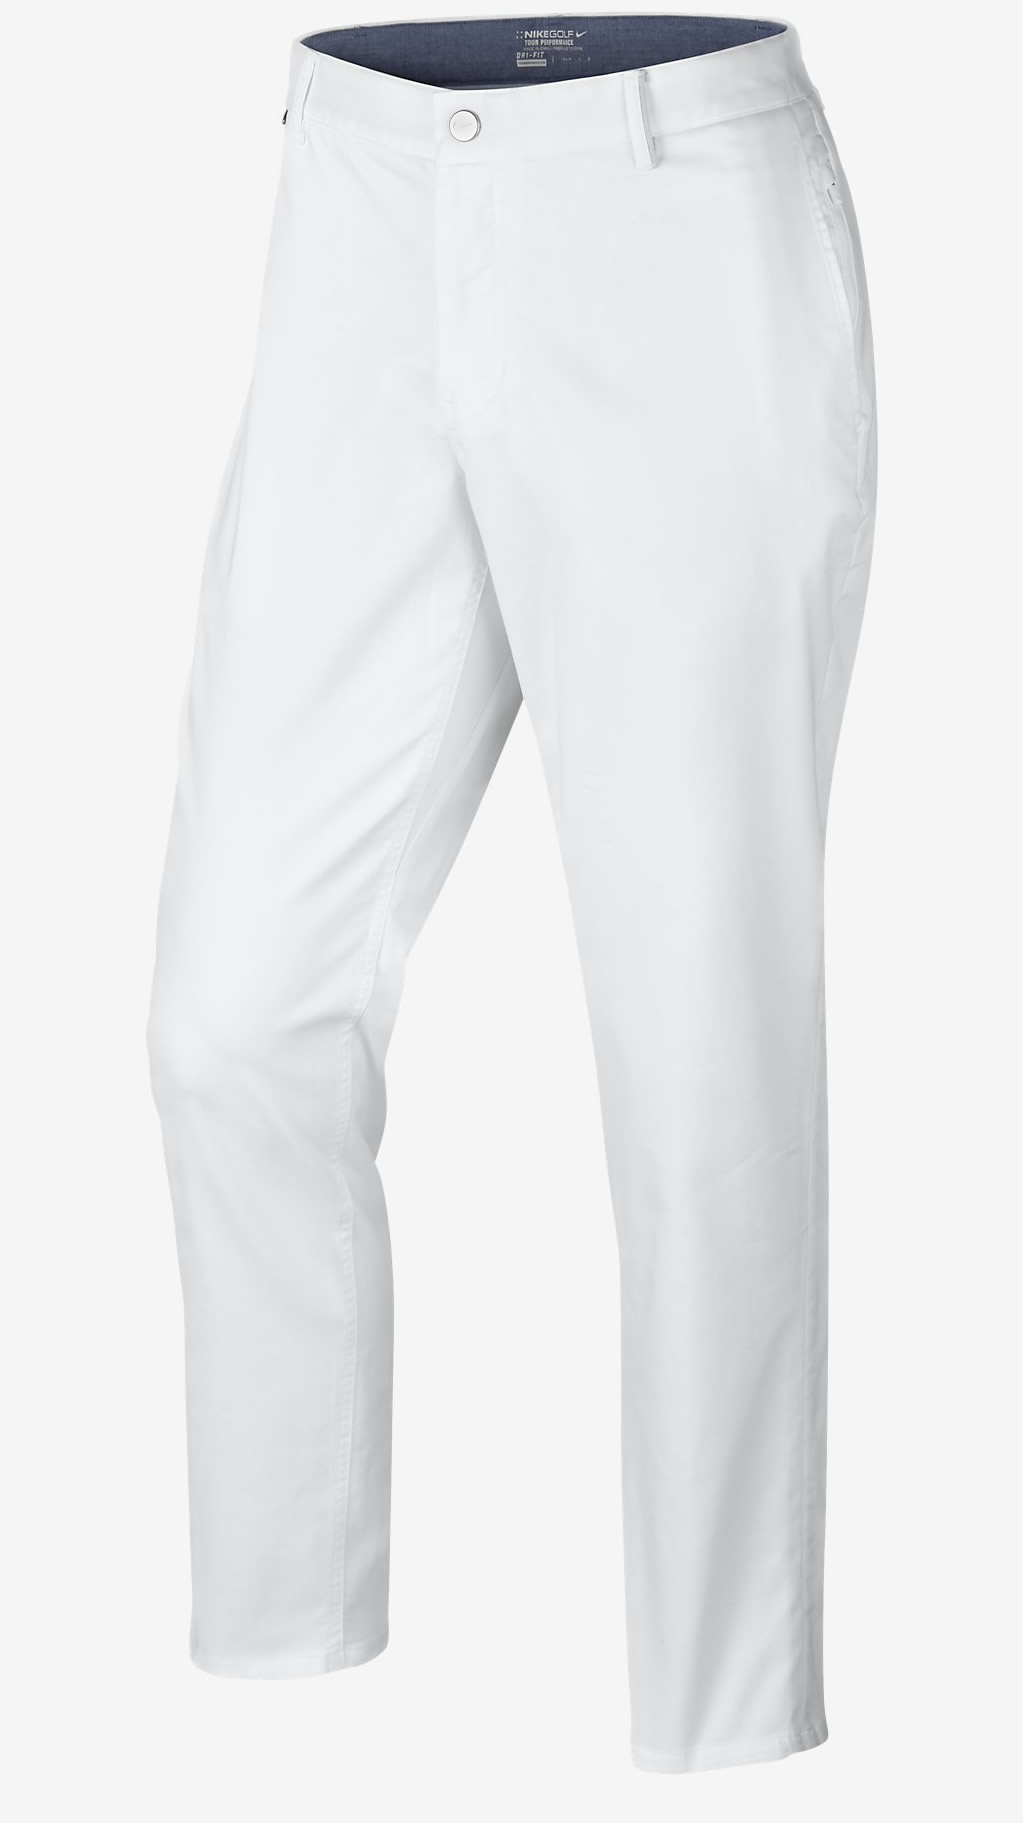 White Nike Modern Fit Washed Golf Pants